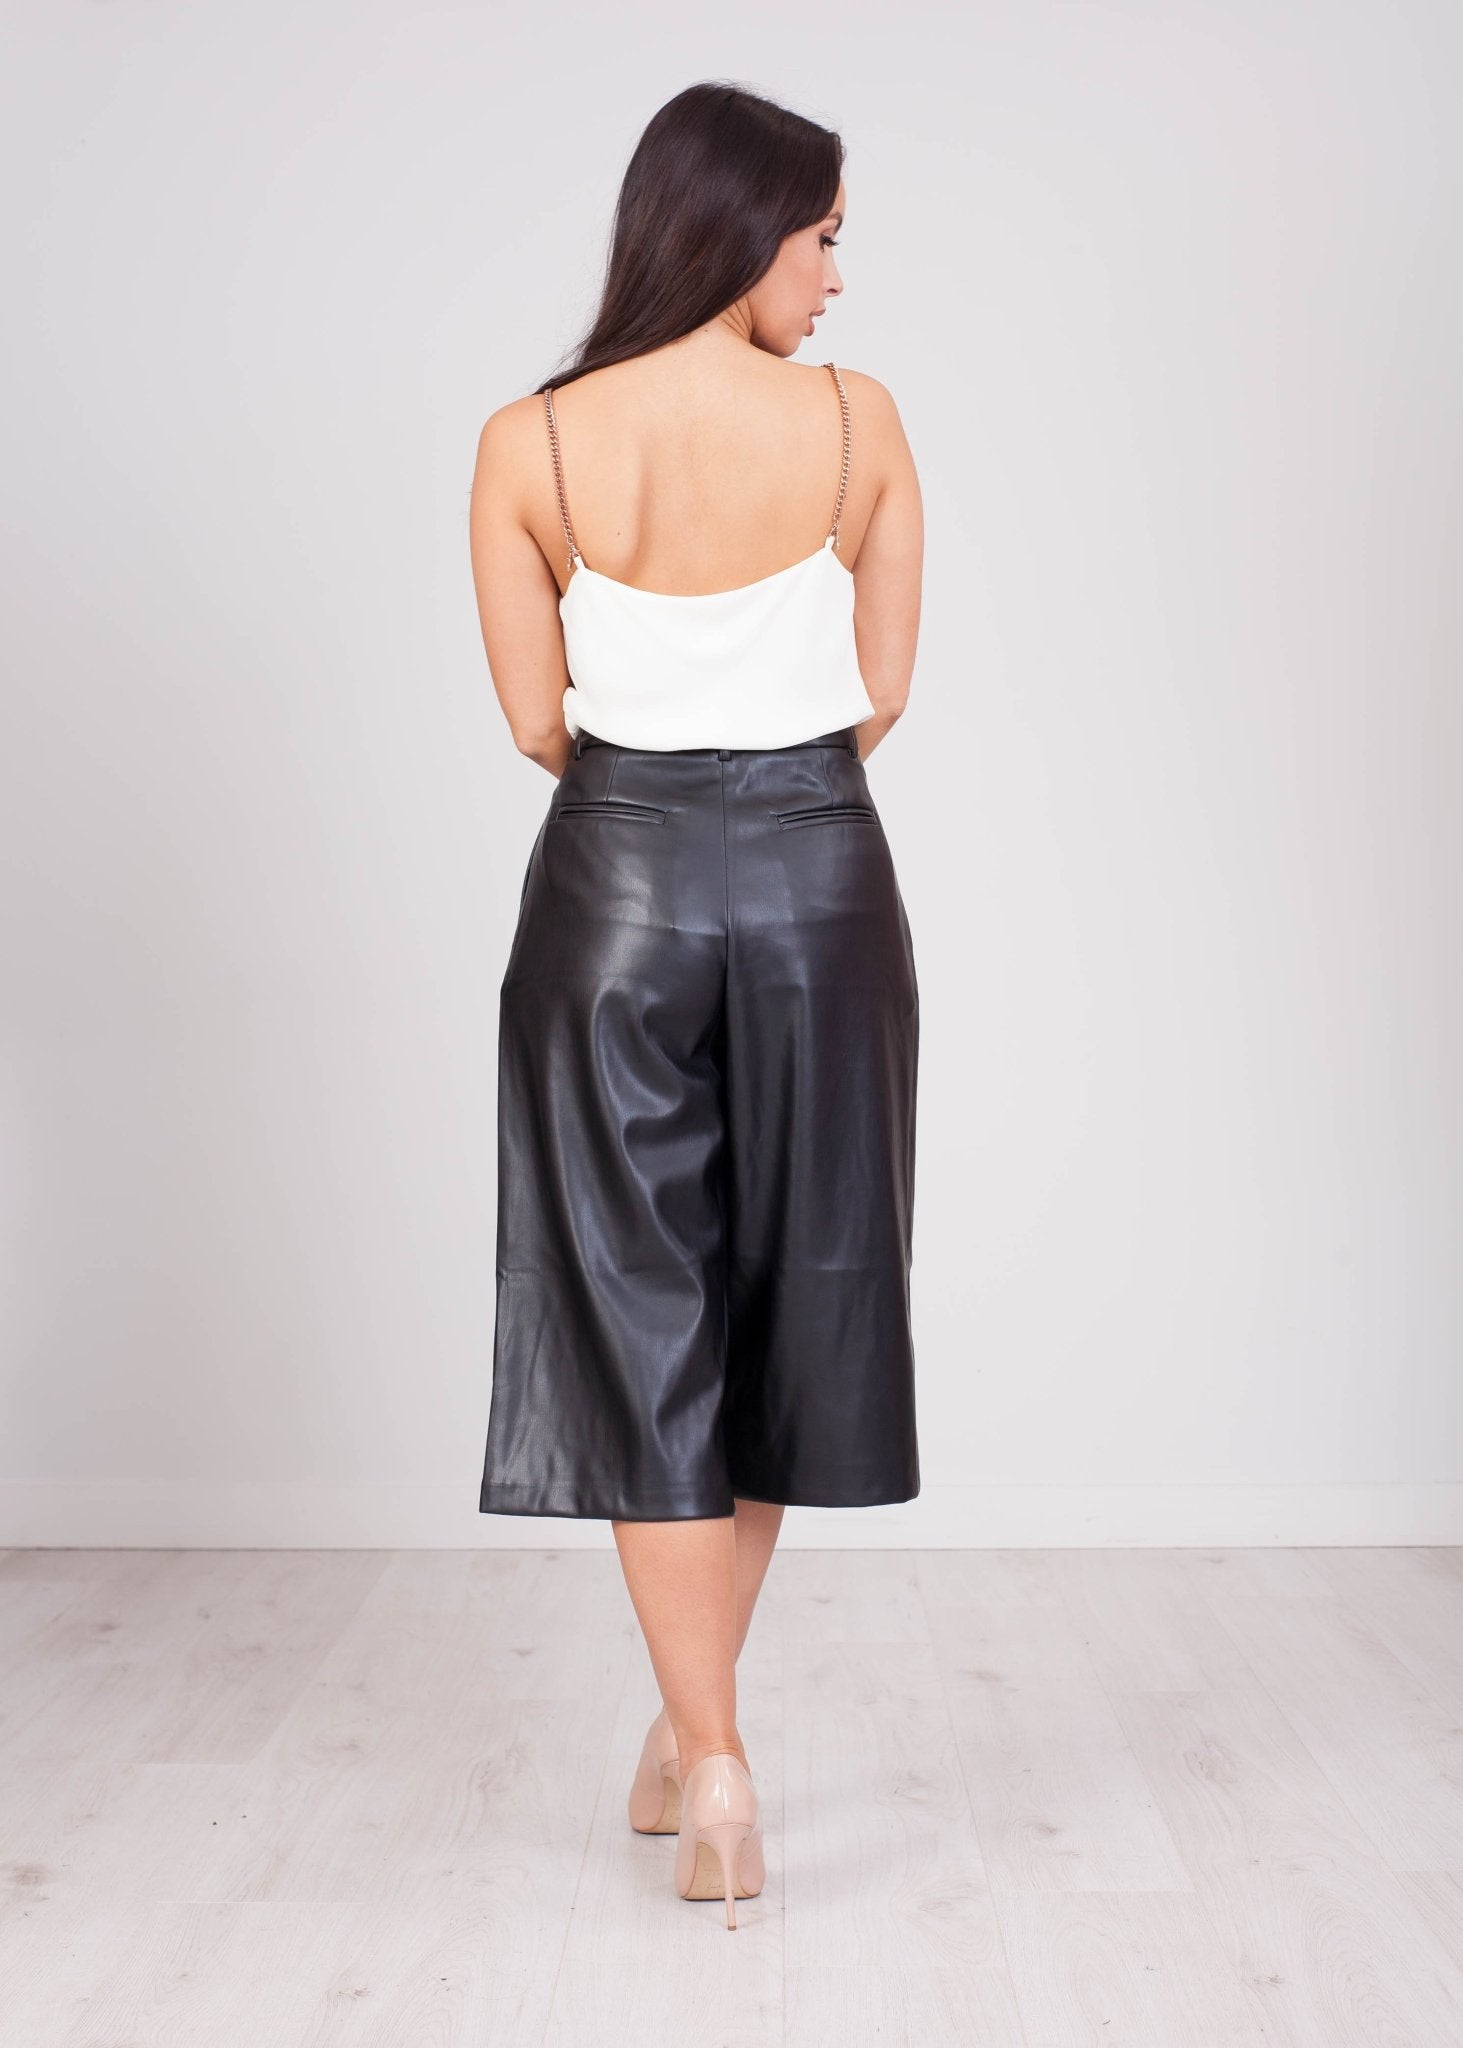 Emilia Leather Culotte - The Walk in Wardrobe